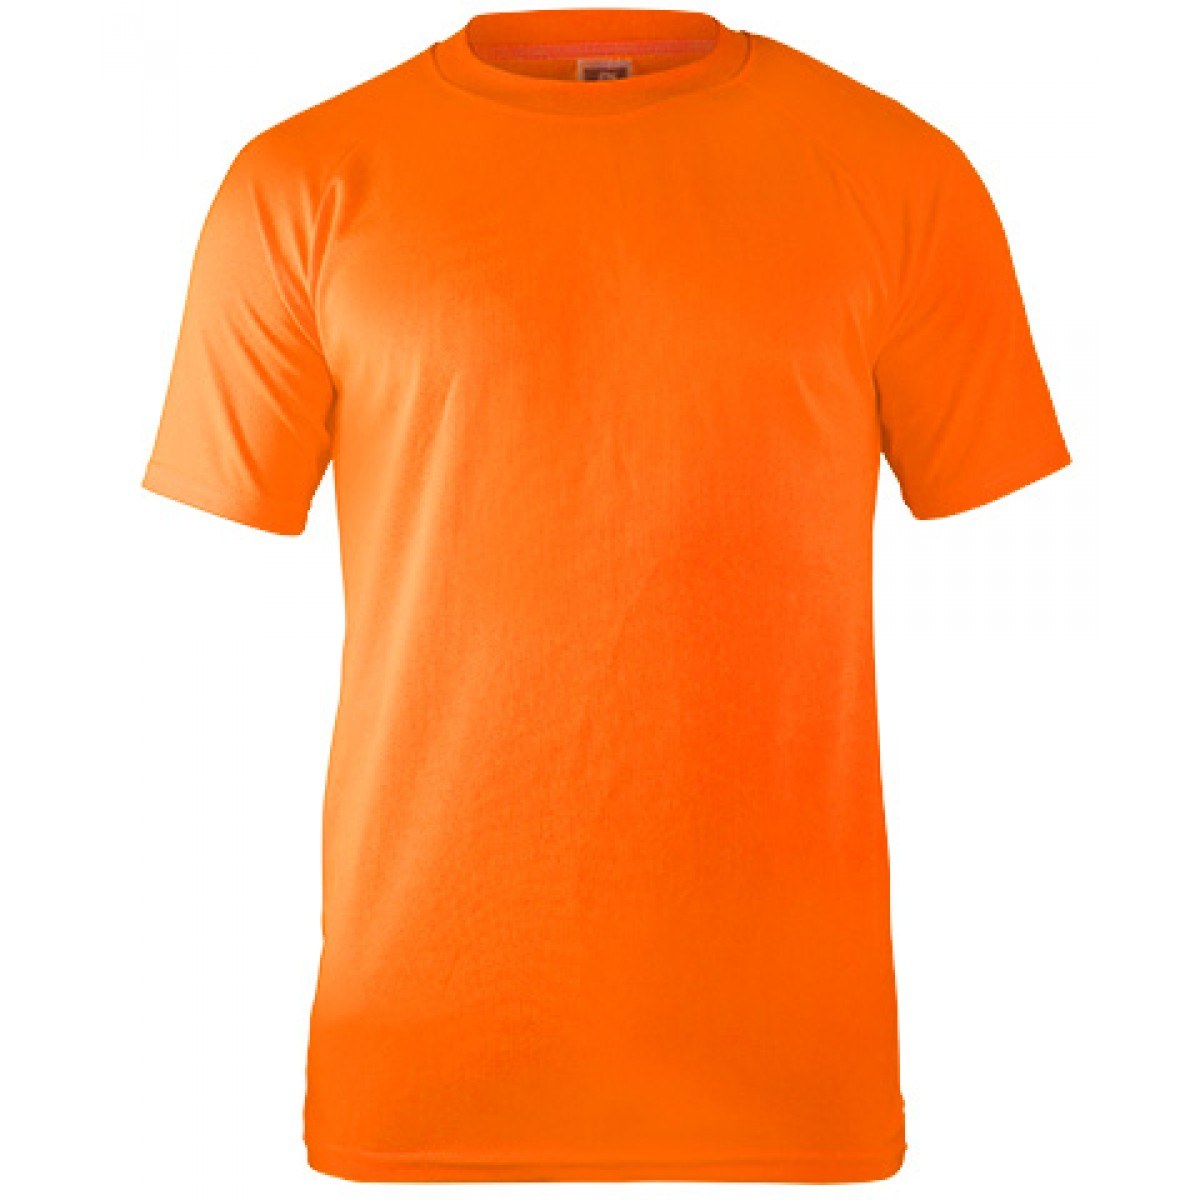 Performance T-shirt-Safety Orange-L